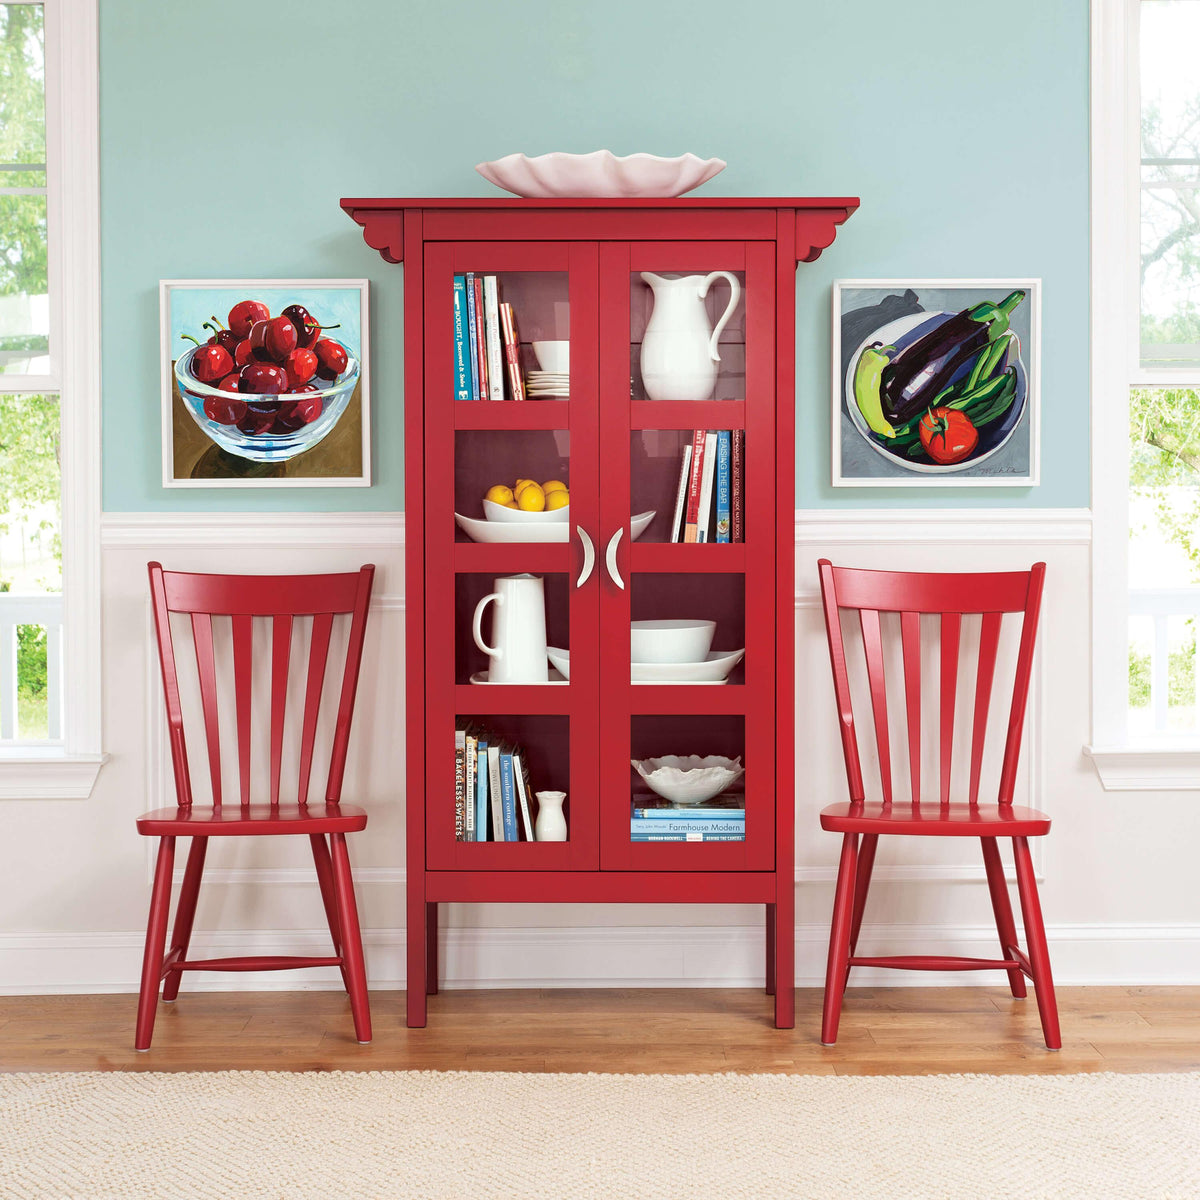 Dusk Blue Kitchen Cabinets: Ruby Glass Cabinet By Maine Cottage